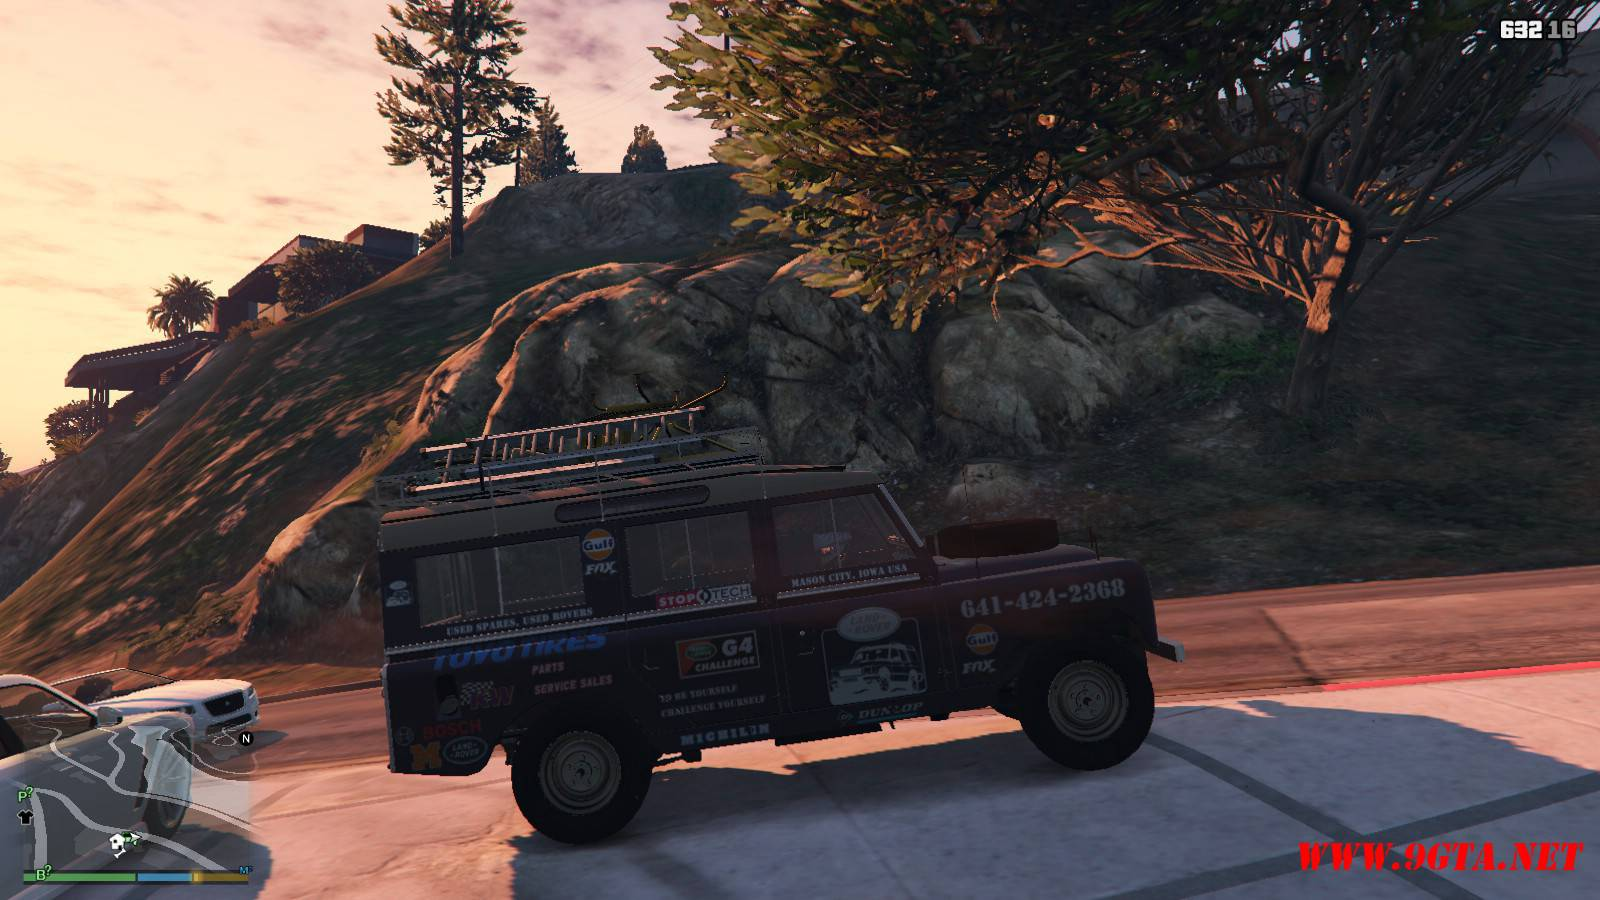 1971 Land Rover Series II Model 109A GTA5 Mods (4)